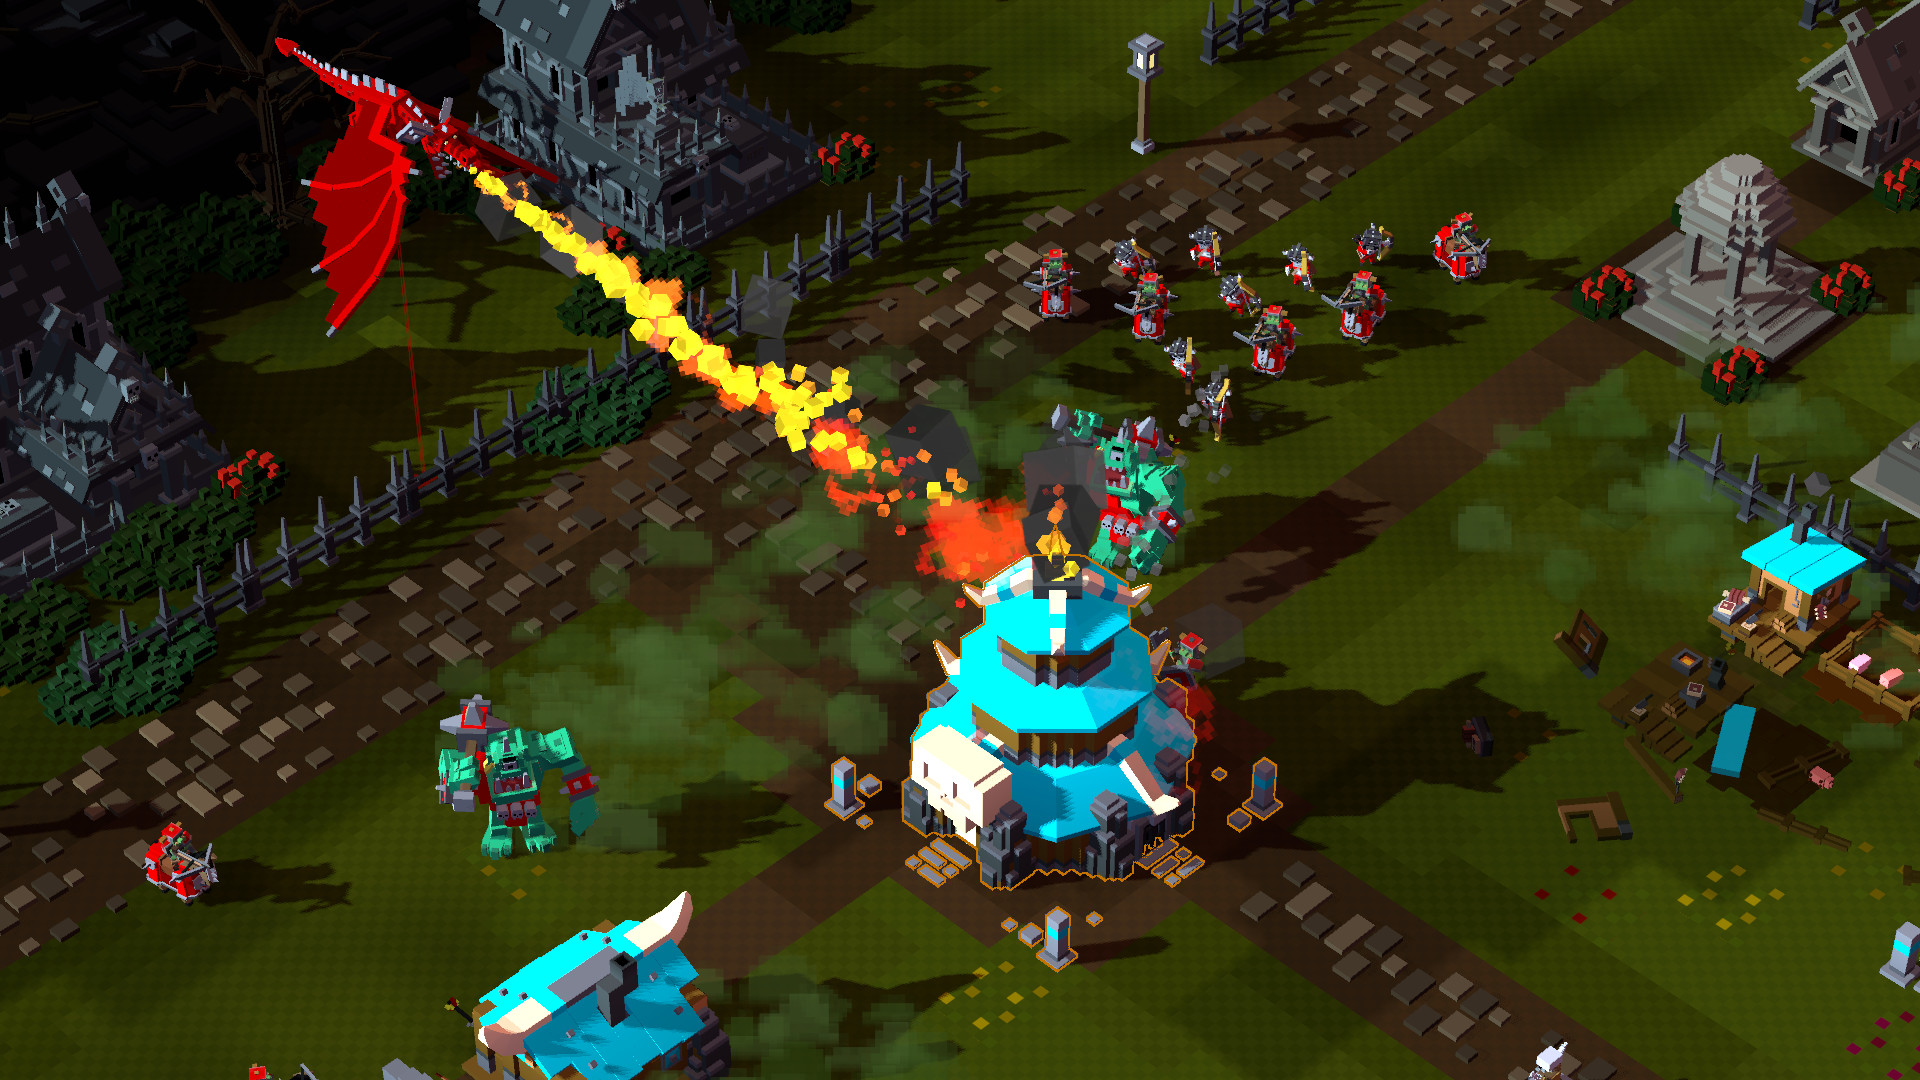 8-bit-hordes-review-screenshot-1